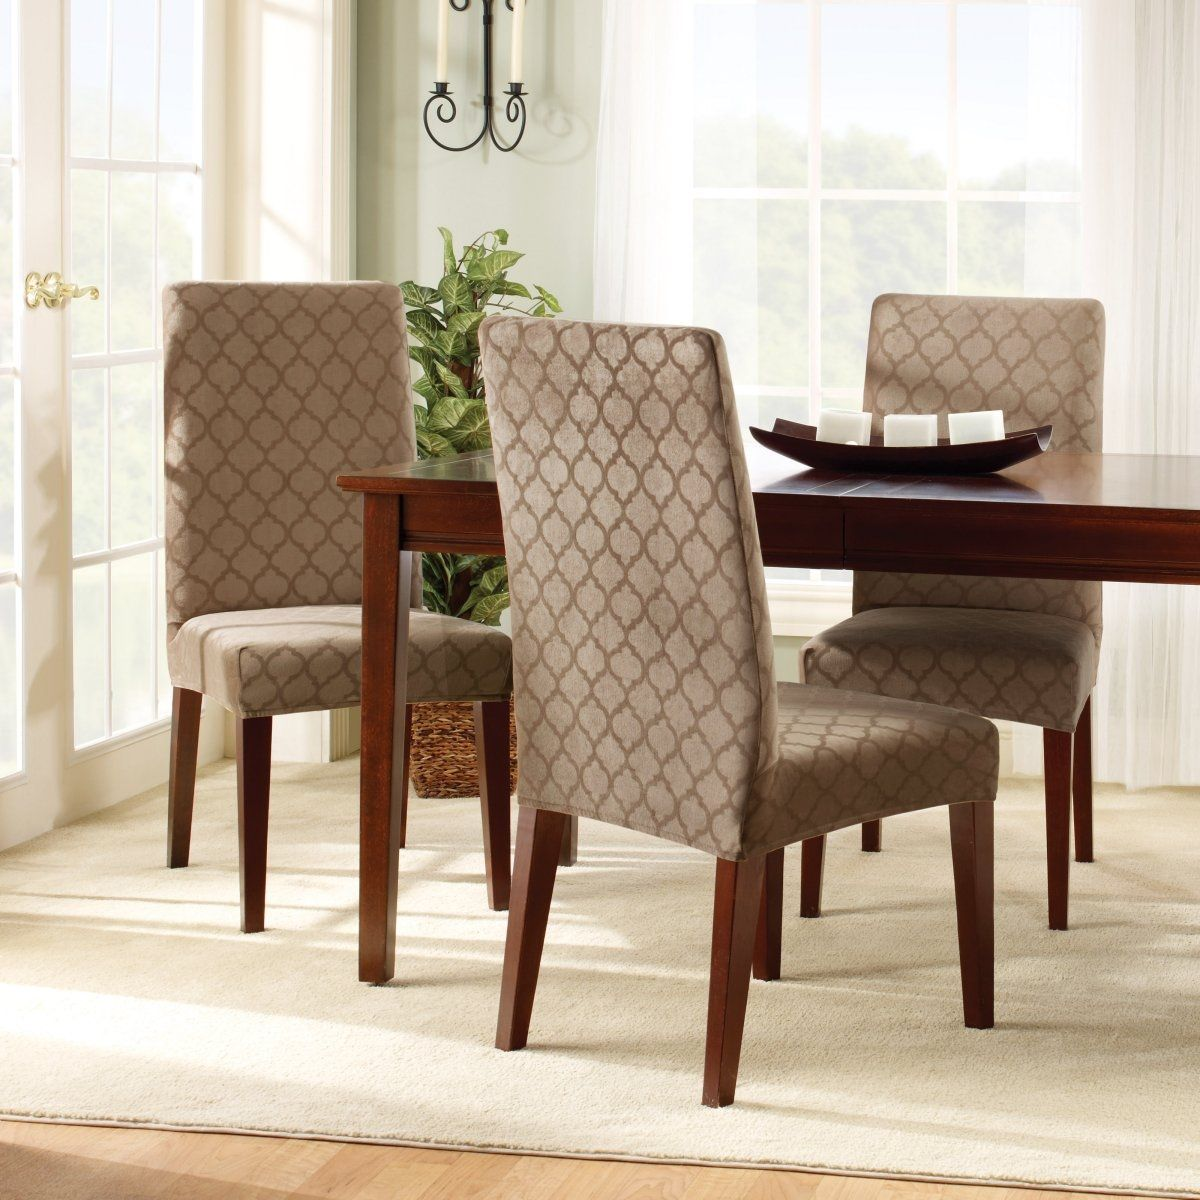 Material For Dining Room Chair Covers  Httpimages11 Prepossessing Dining Room Covers Design Ideas